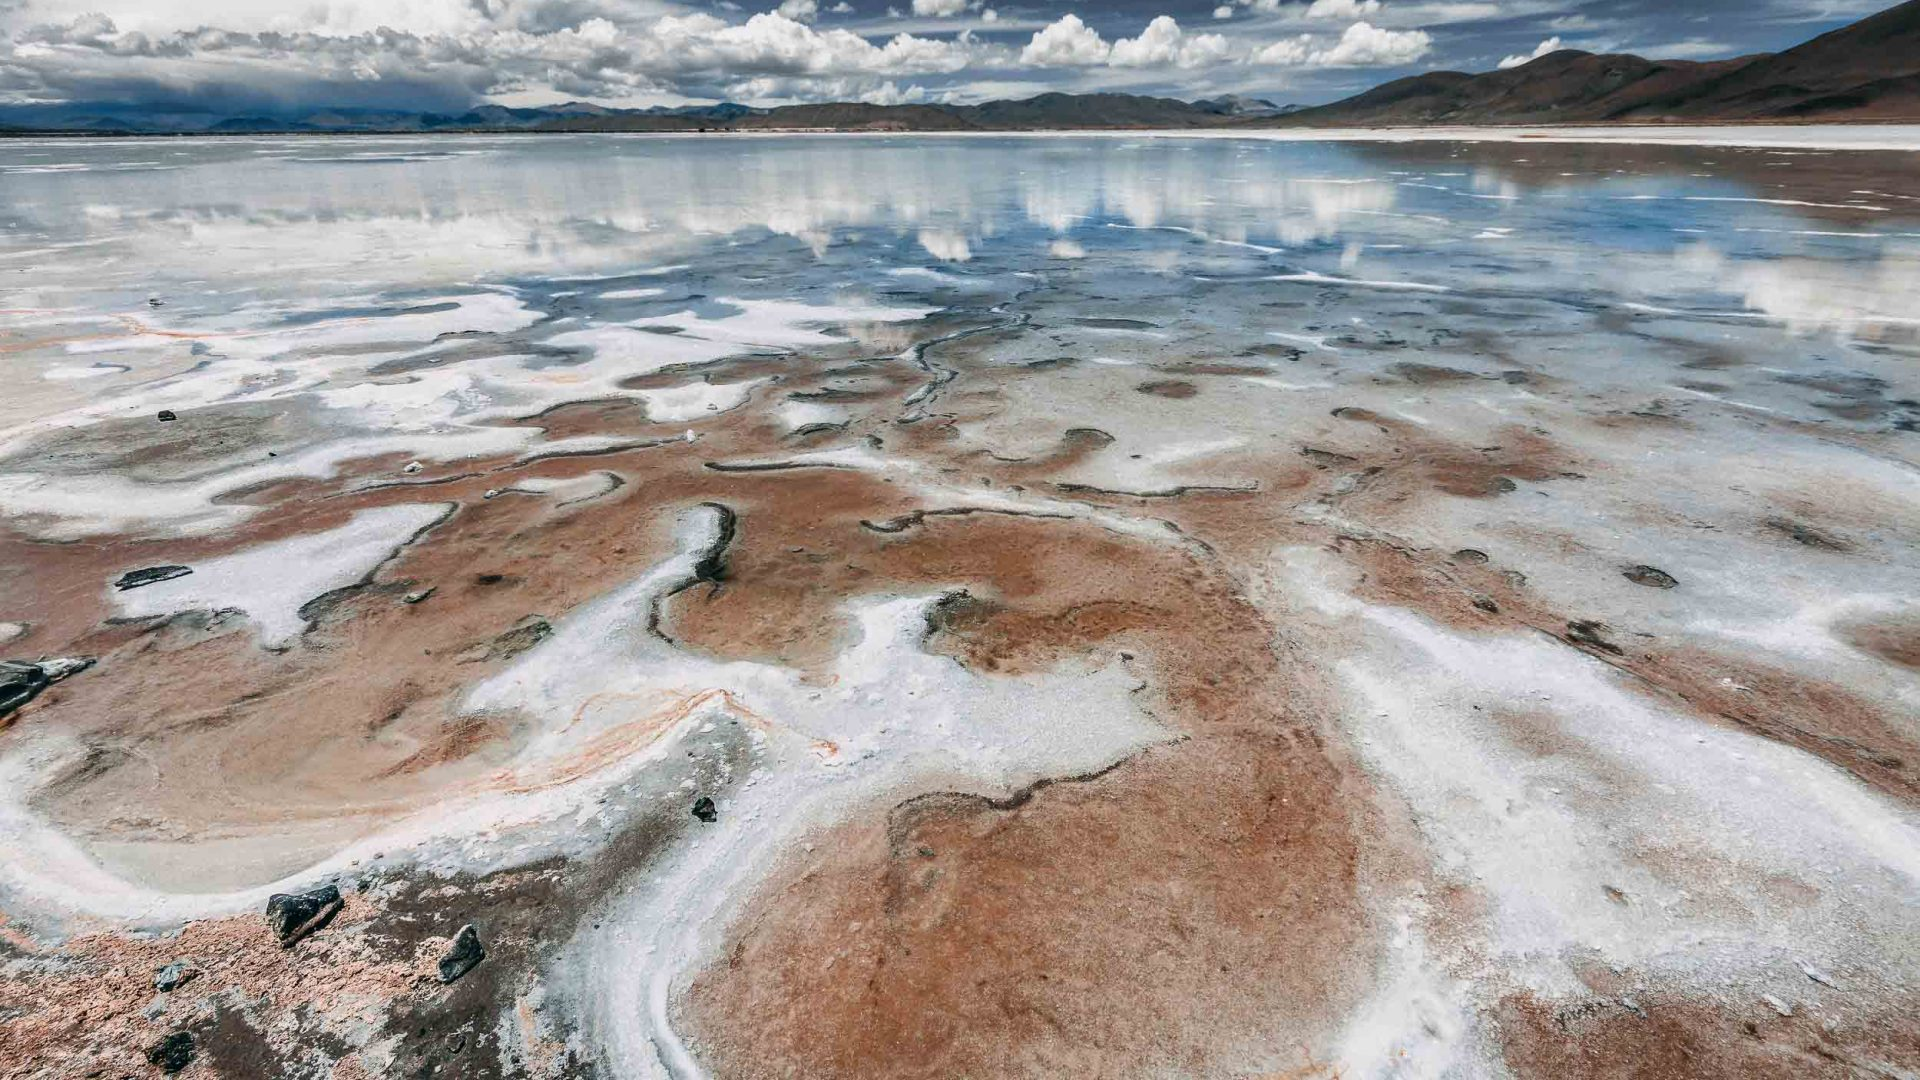 Clouds are reflected in the saline pools of Salta, Argentina.